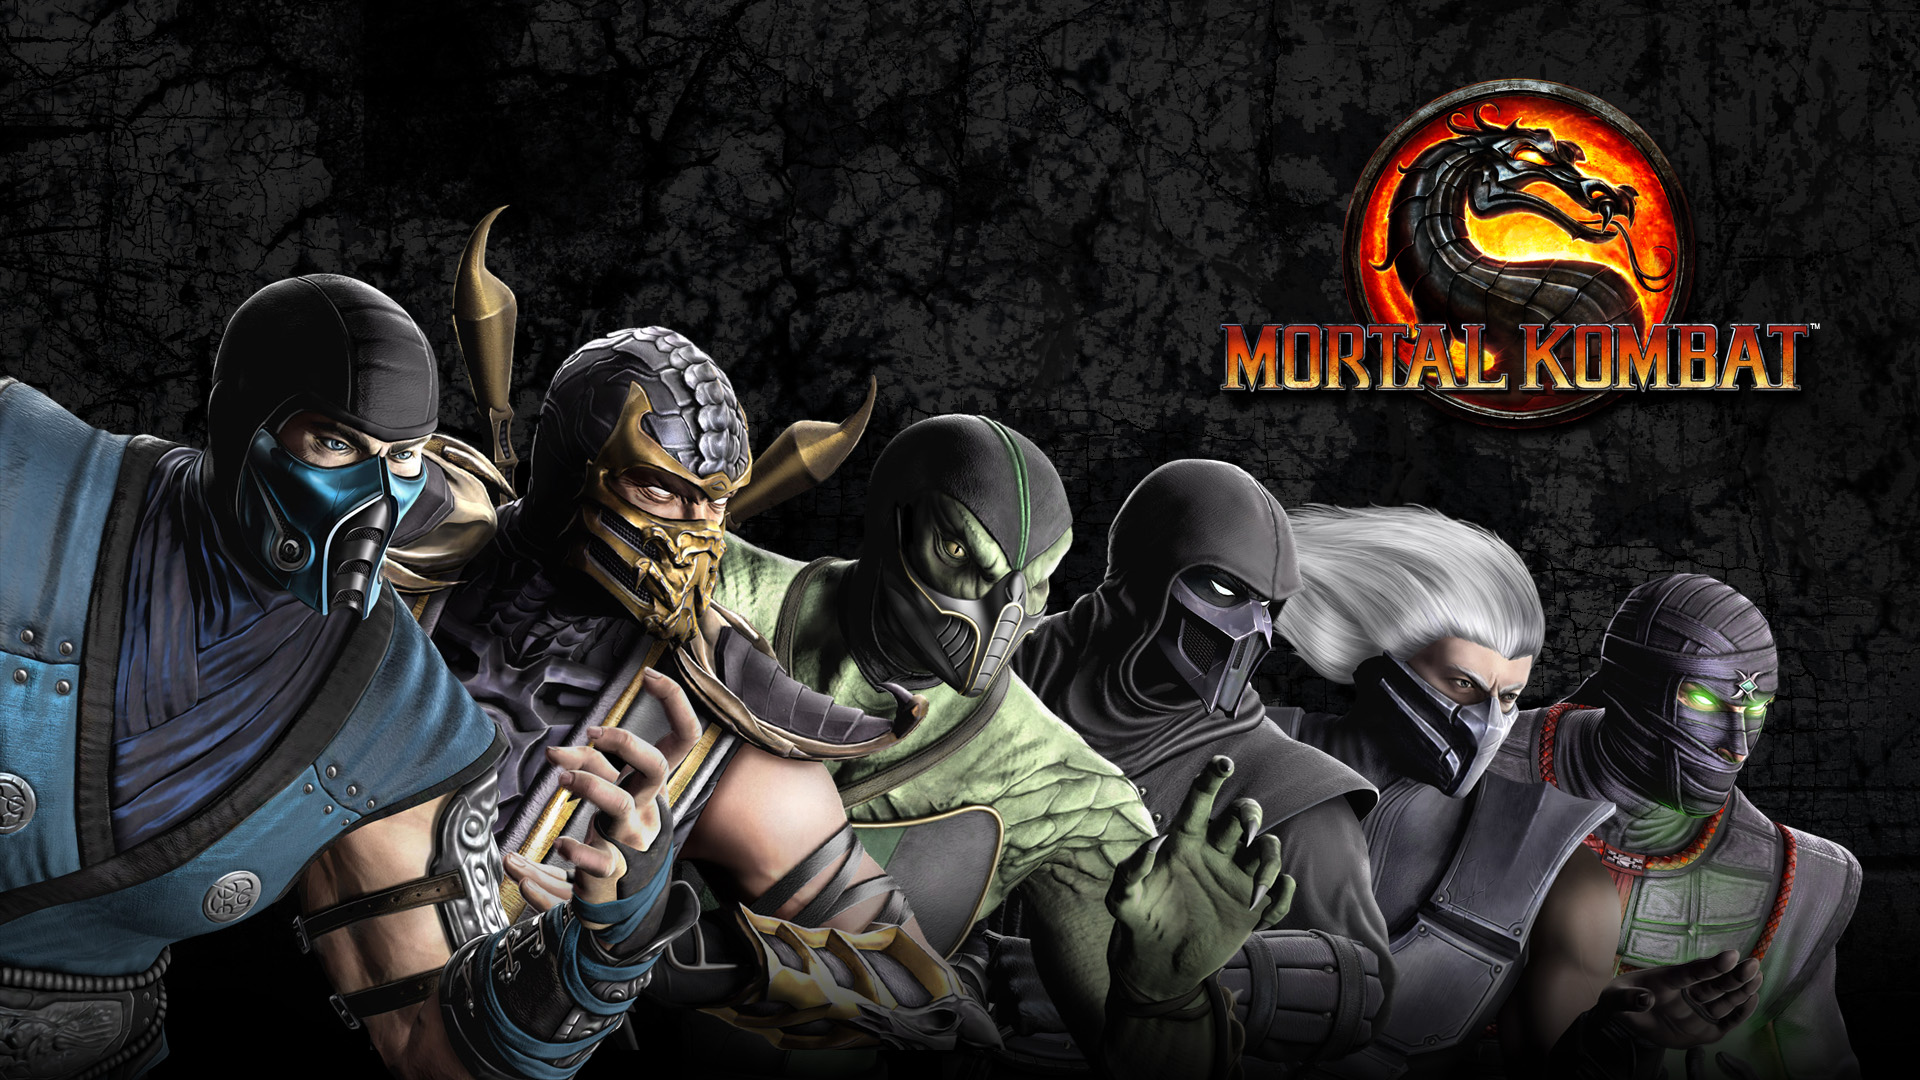 mortal kombat pictures A1